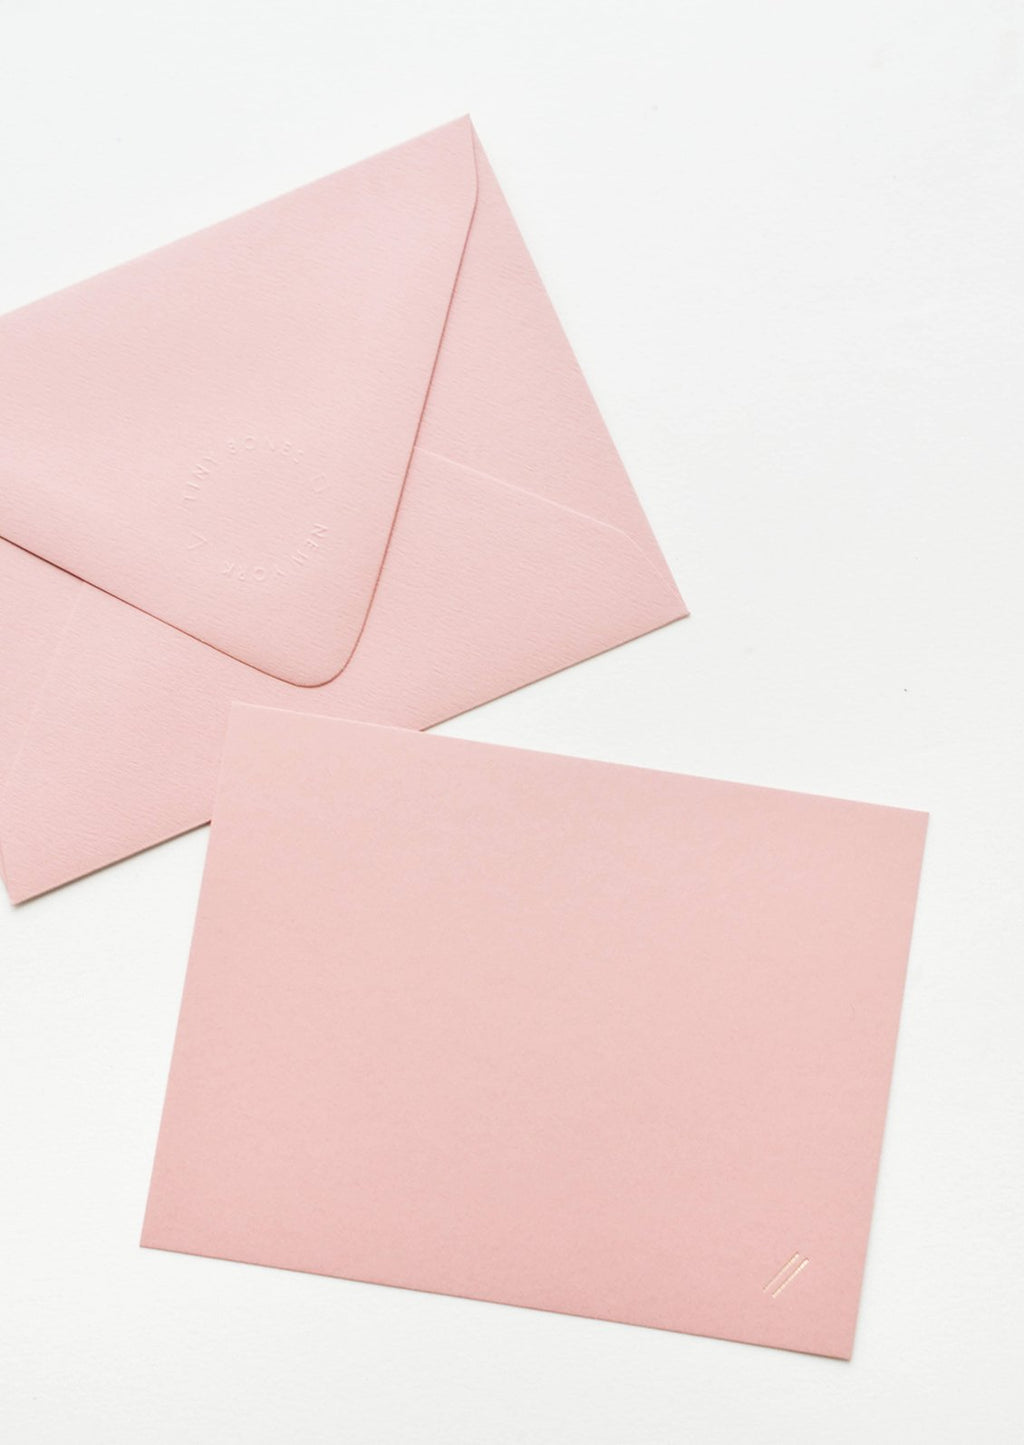 Single Card: A pink envelope and pink greeting card with two small gold foil diagonal lines at bottom right.